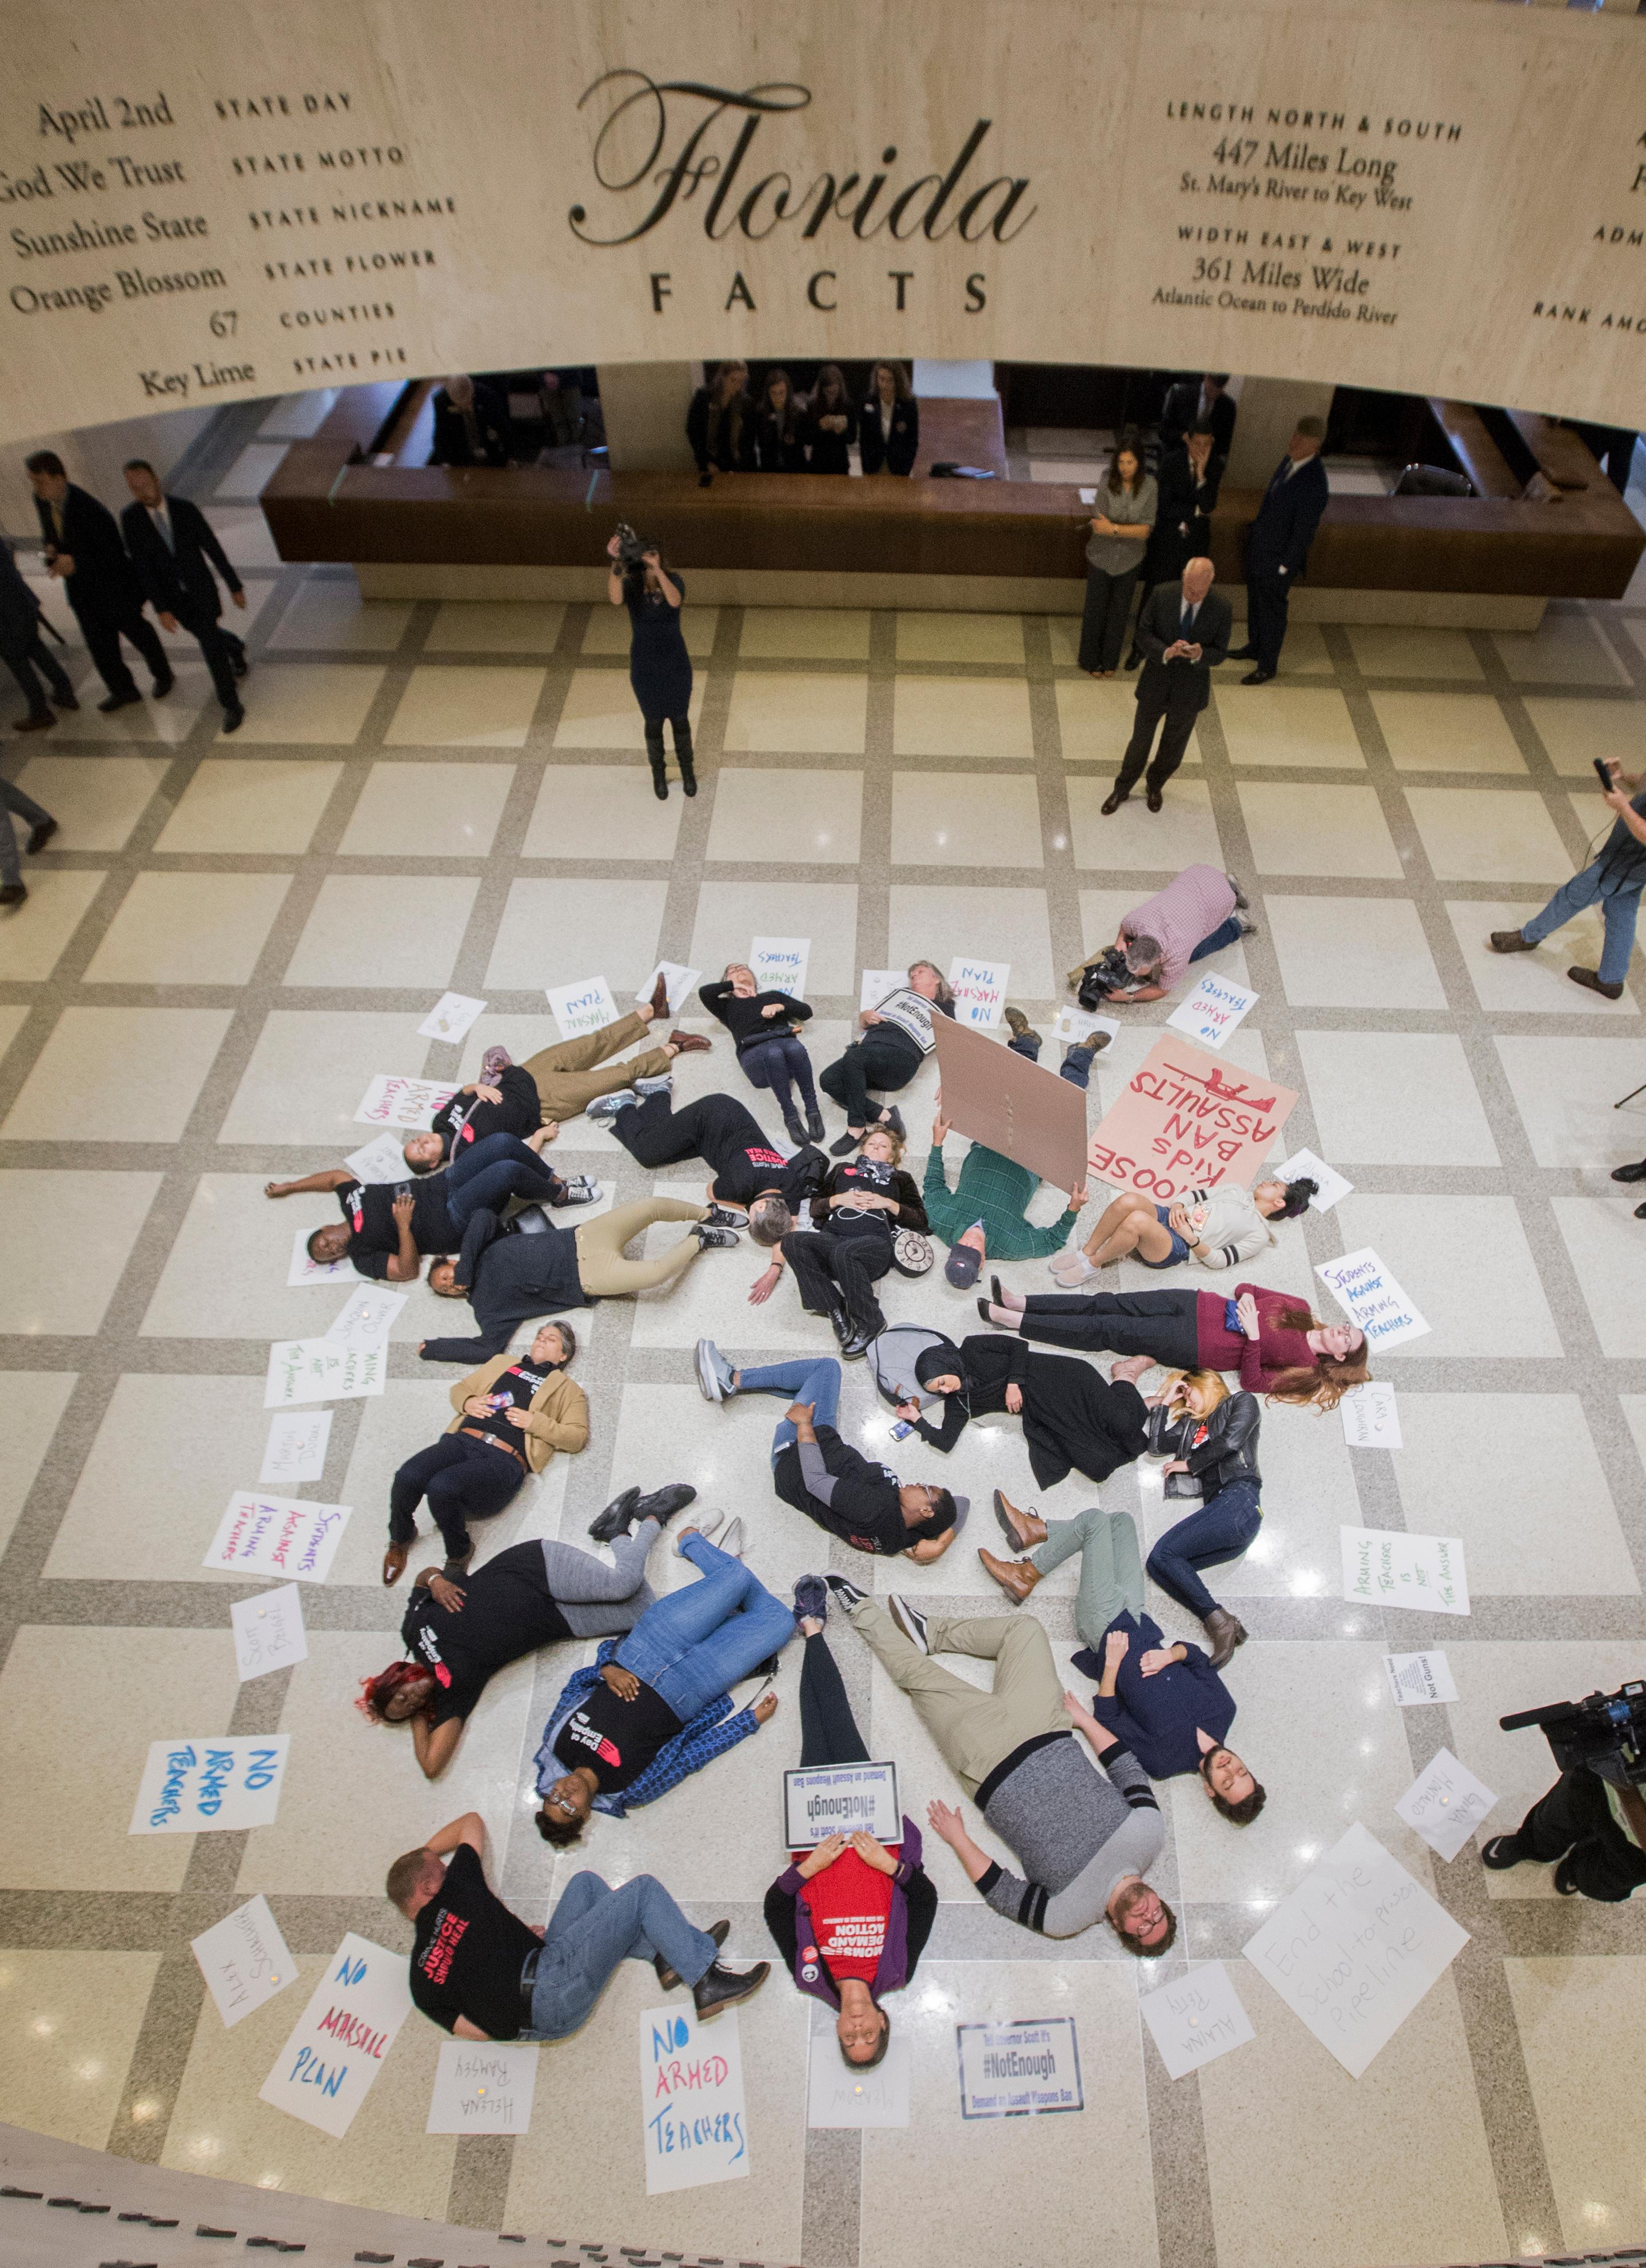 A group of 20 college students and activists stage a die-in on the 4th floor rotunda between the House and Senate chambers while the House takes up the school safety bill at the Florida Capital in Tallahassee, Fla., Tuesday, March 6, 2018. (AP Photo/Mark Wallheiser)